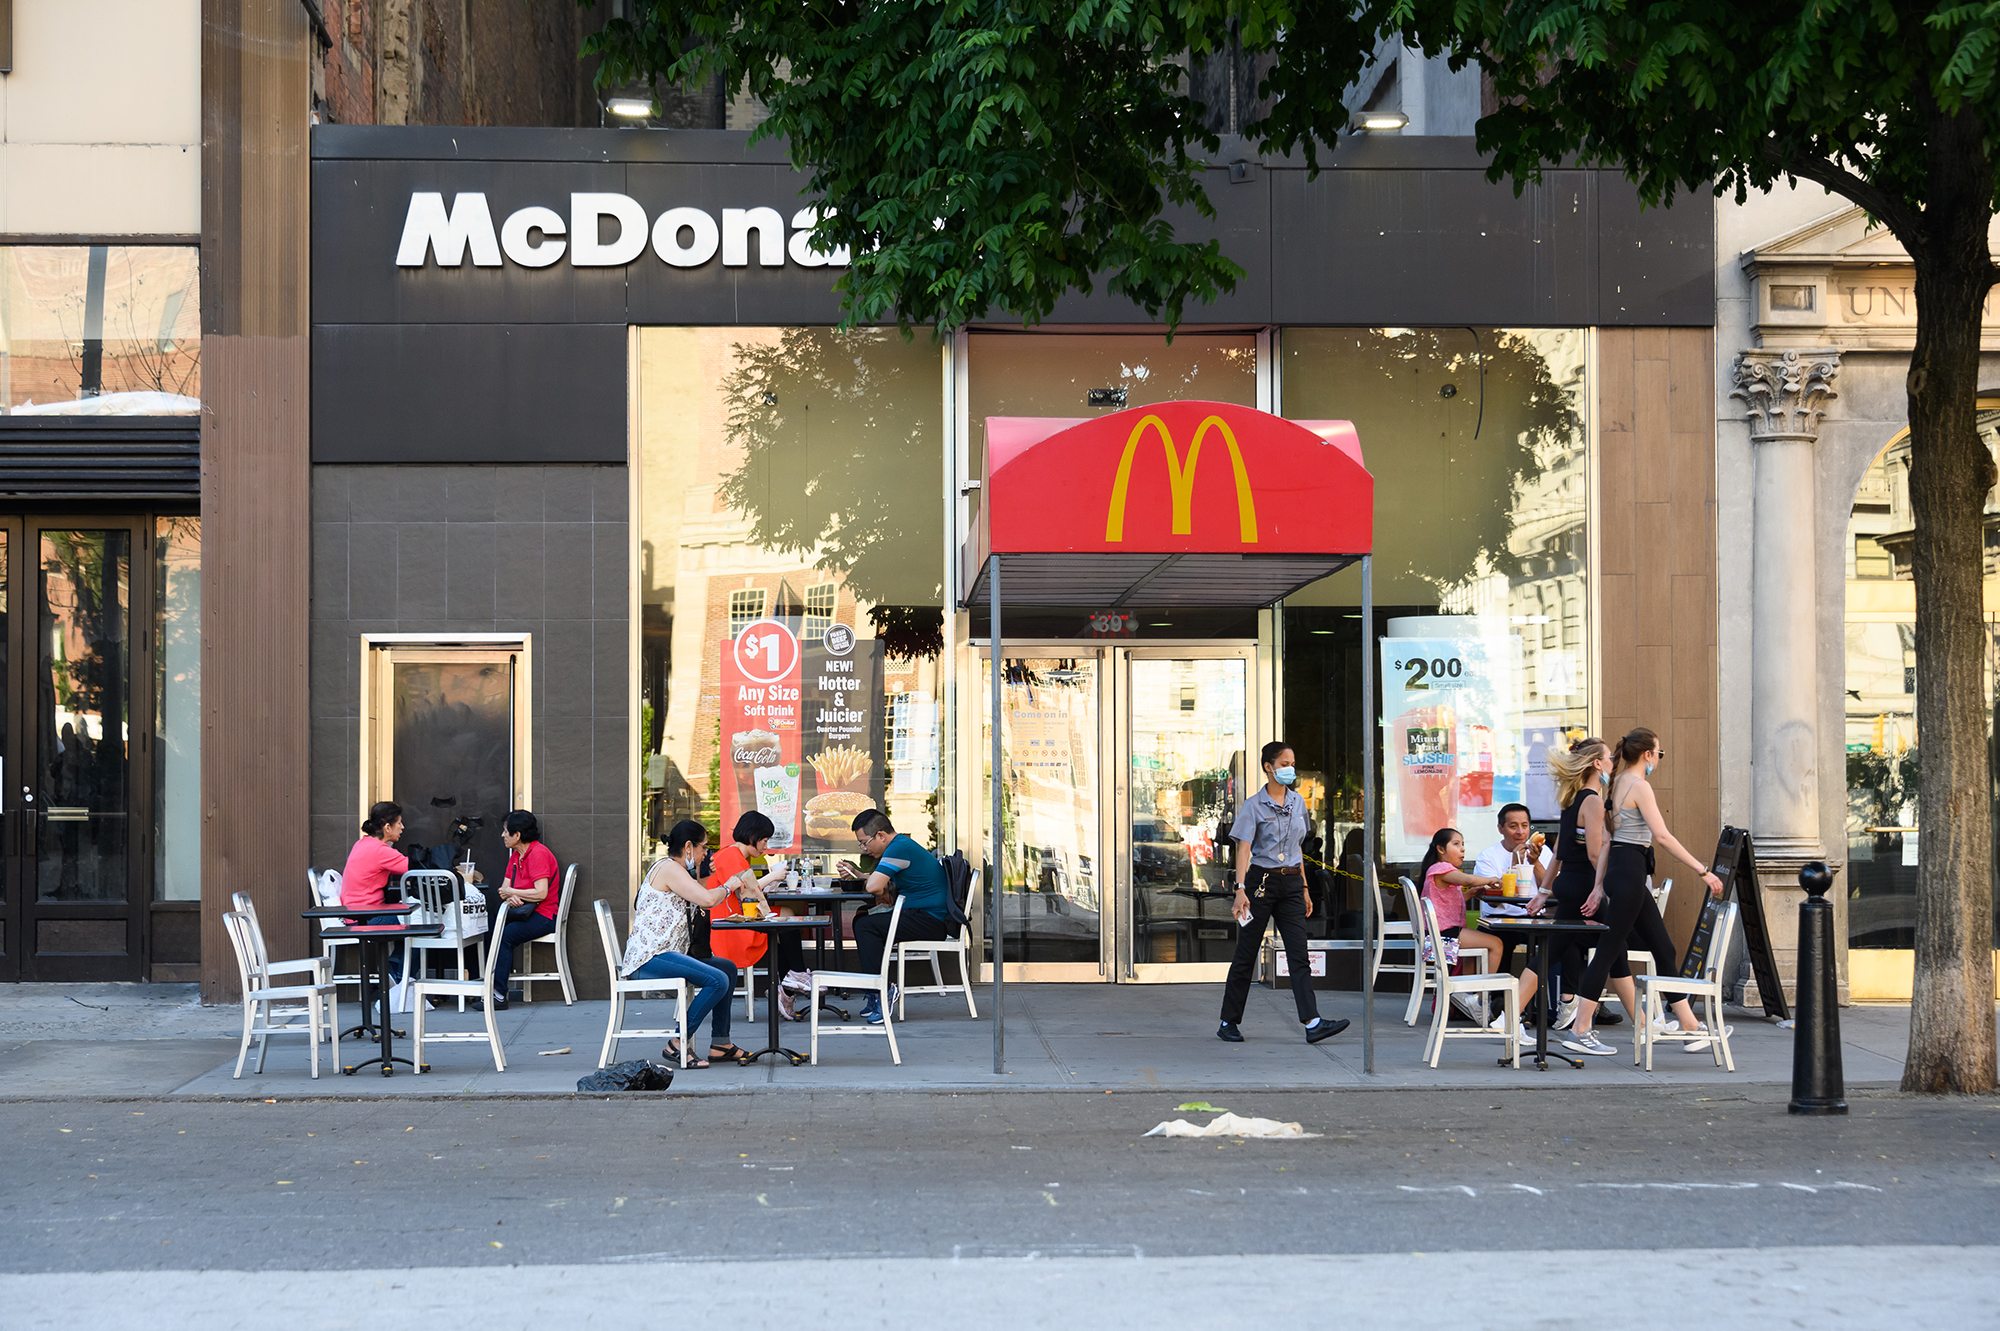 Customers dine outside McDonald's in Union Square as New York City moves into Phase 2 of re-opening following restrictions imposed to curb the coronavirus pandemic on June 24, 2020. (Noam Galai/Getty Images)